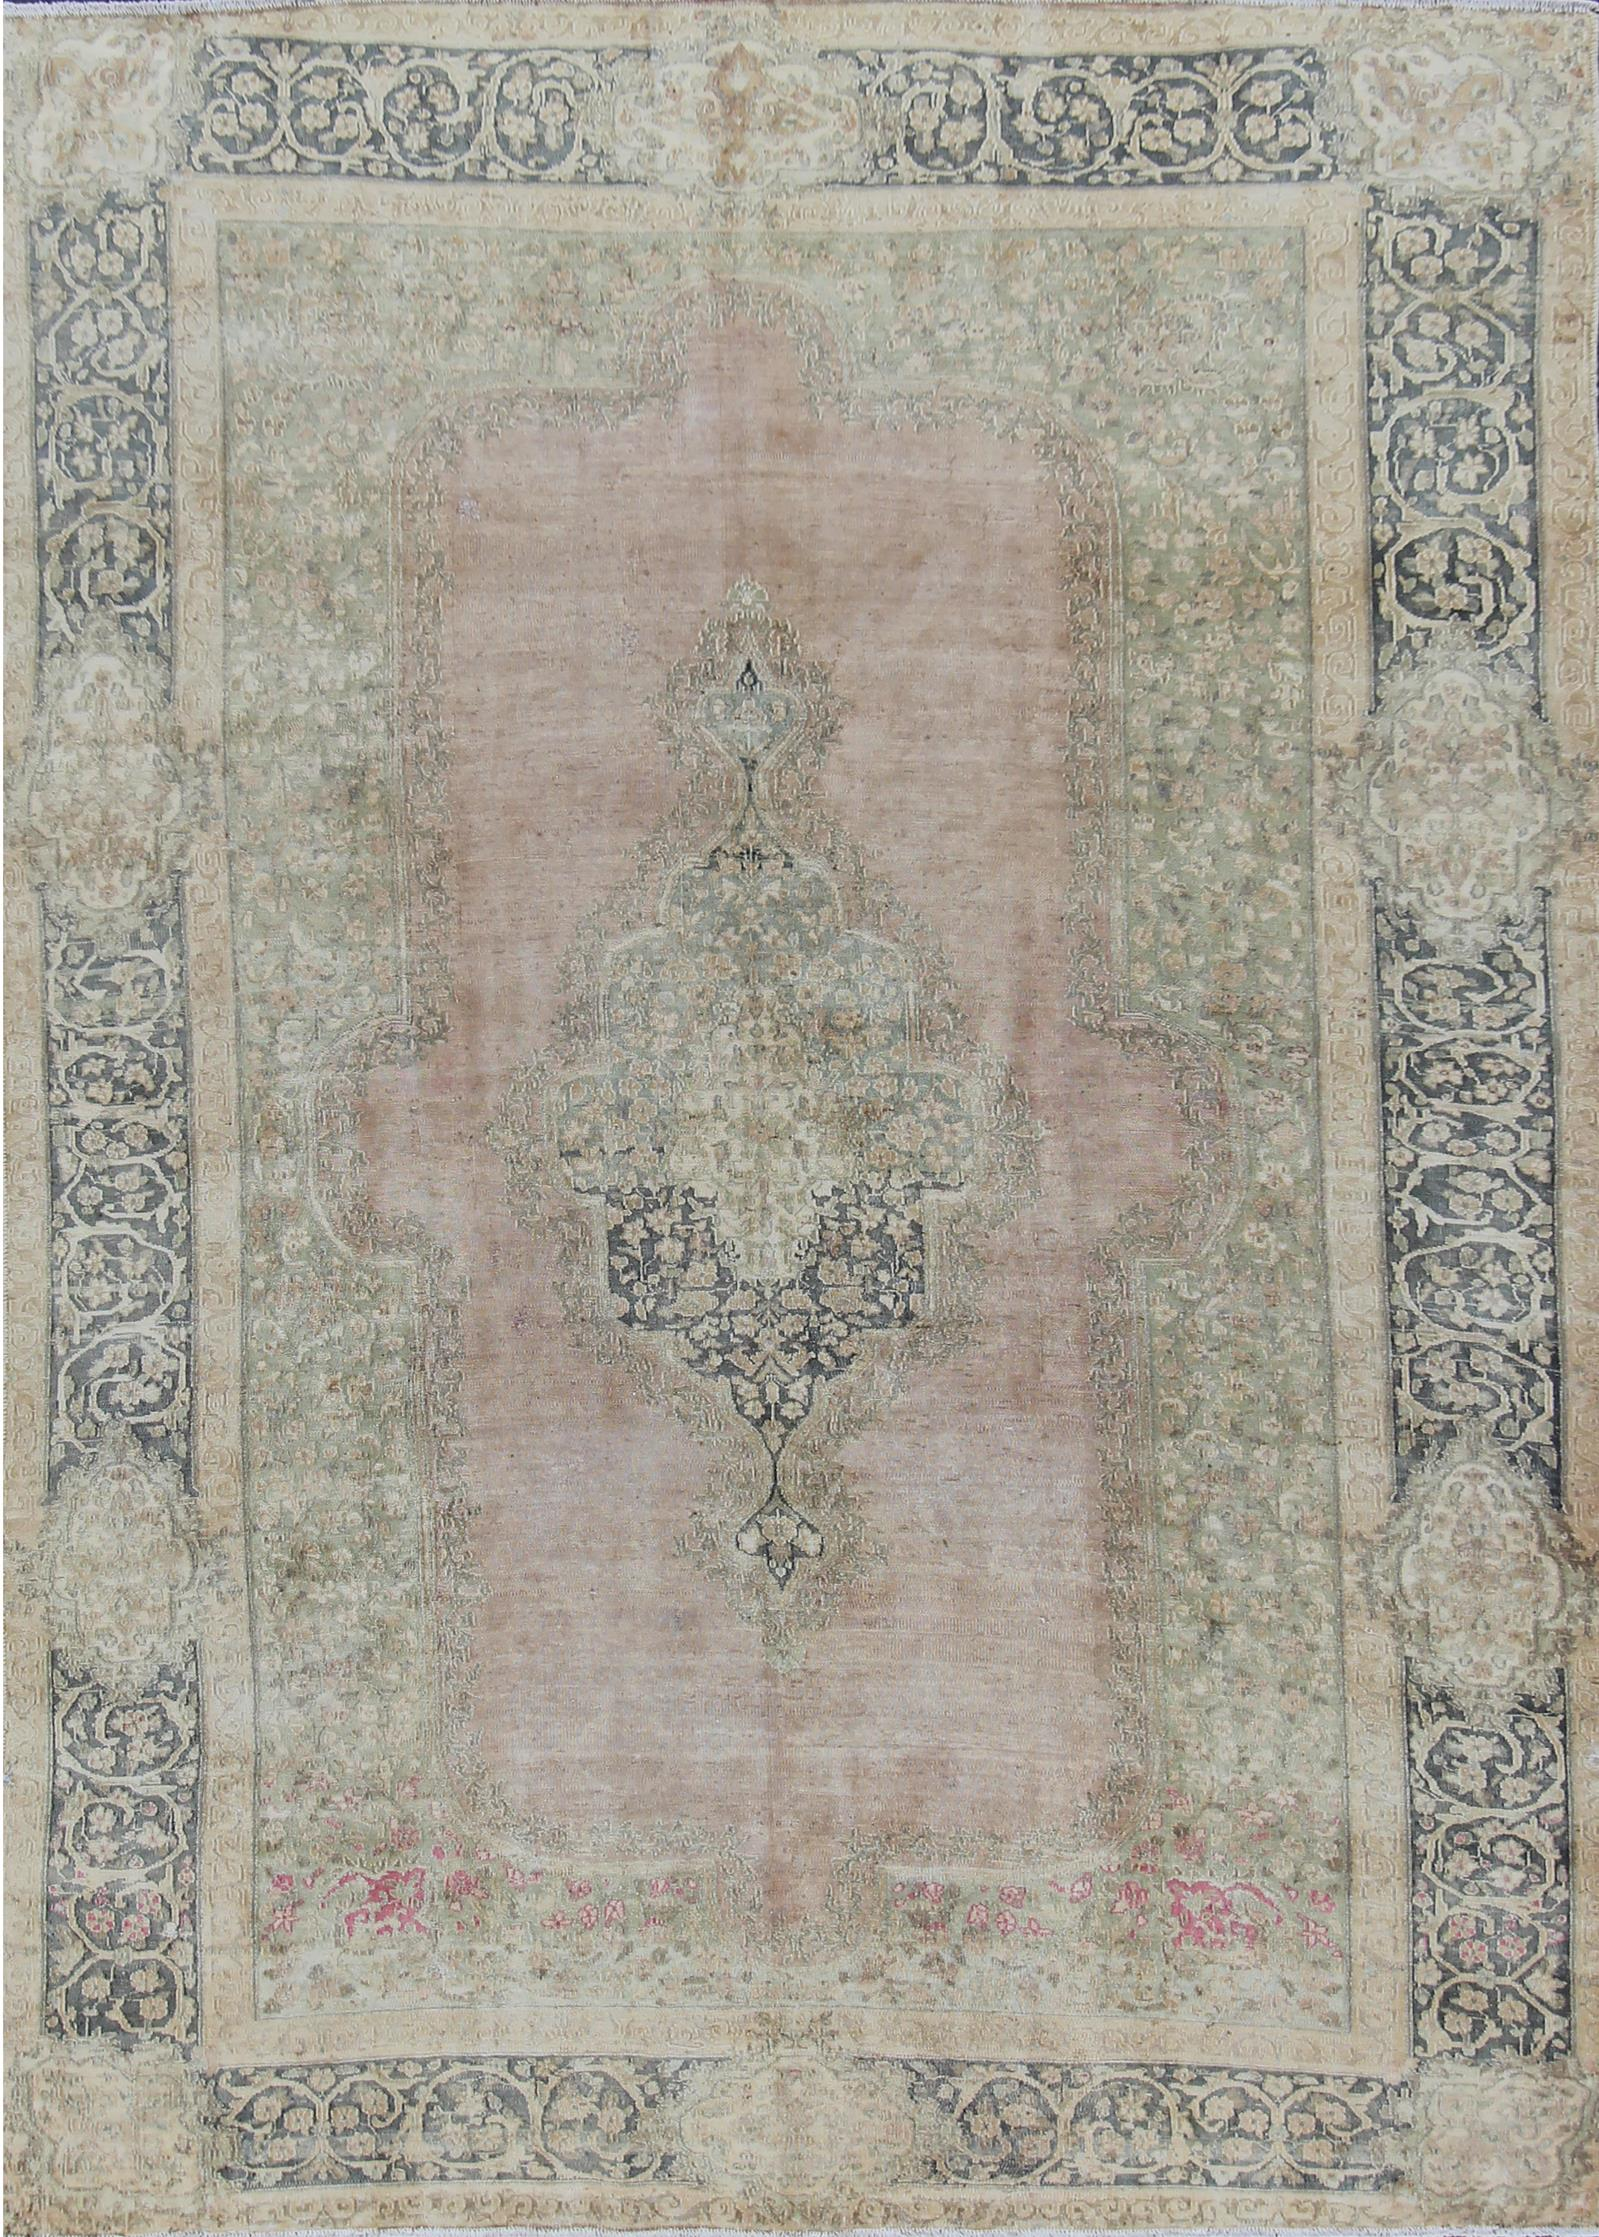 Antique Tabriz Rug, 7X10